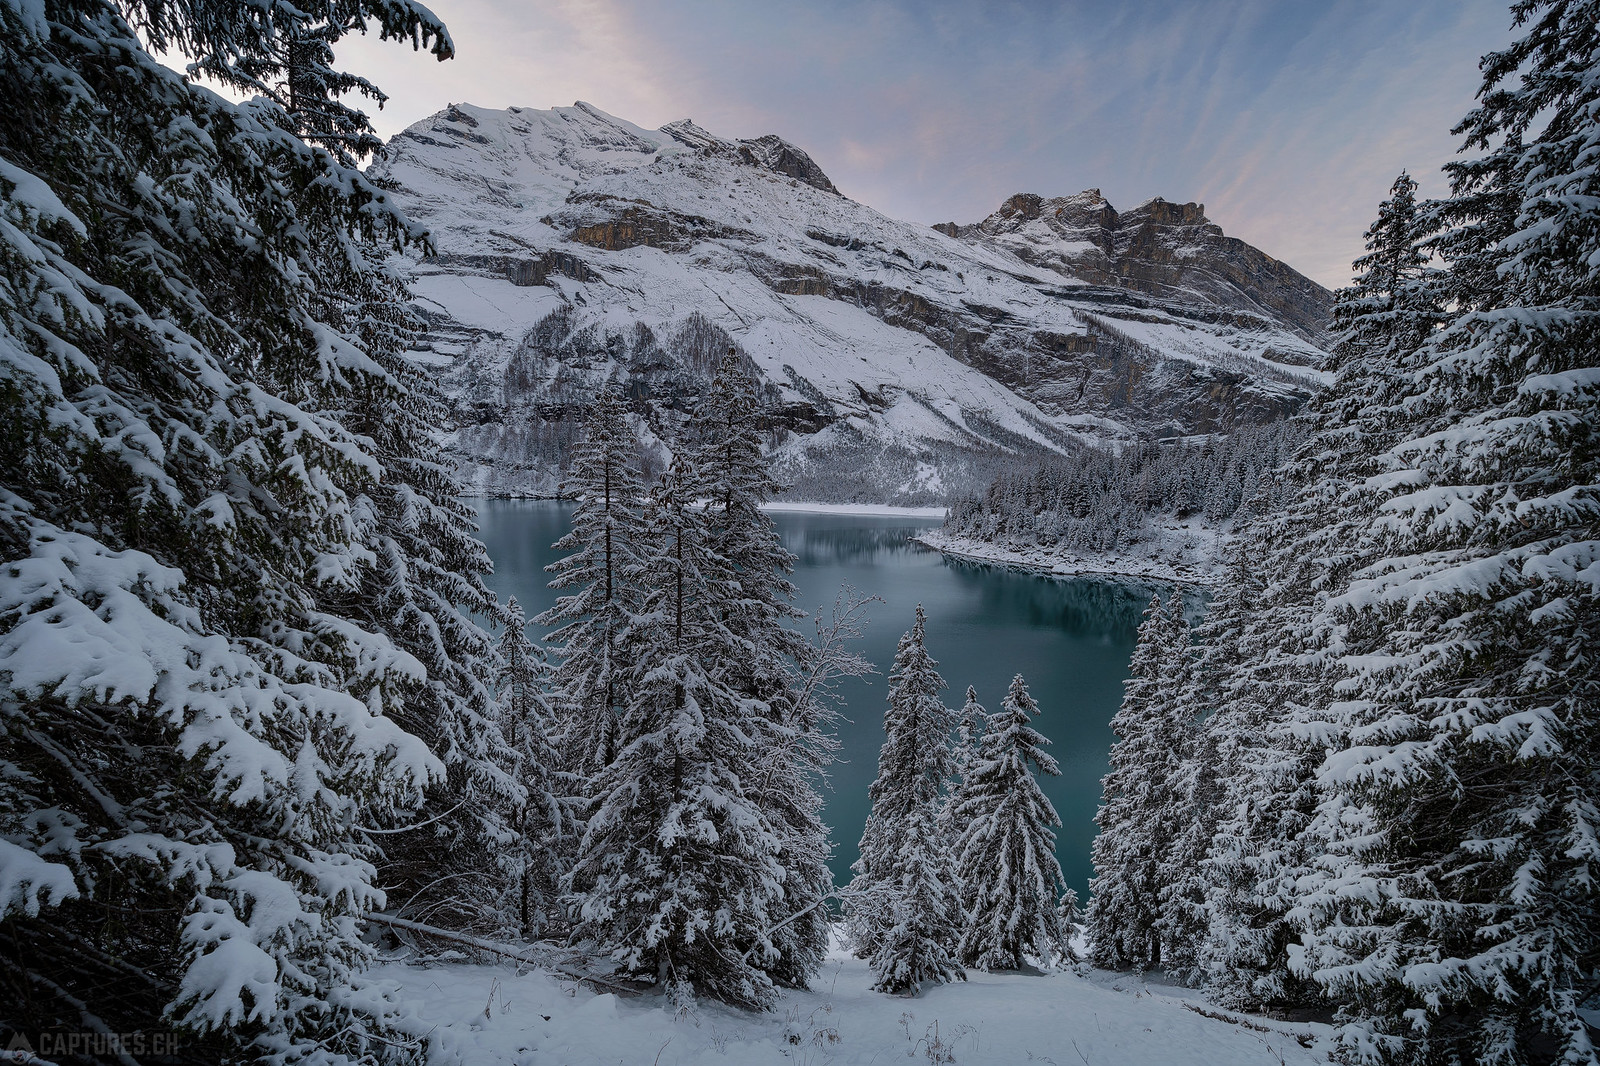 Lake and trees - Oeschinensee